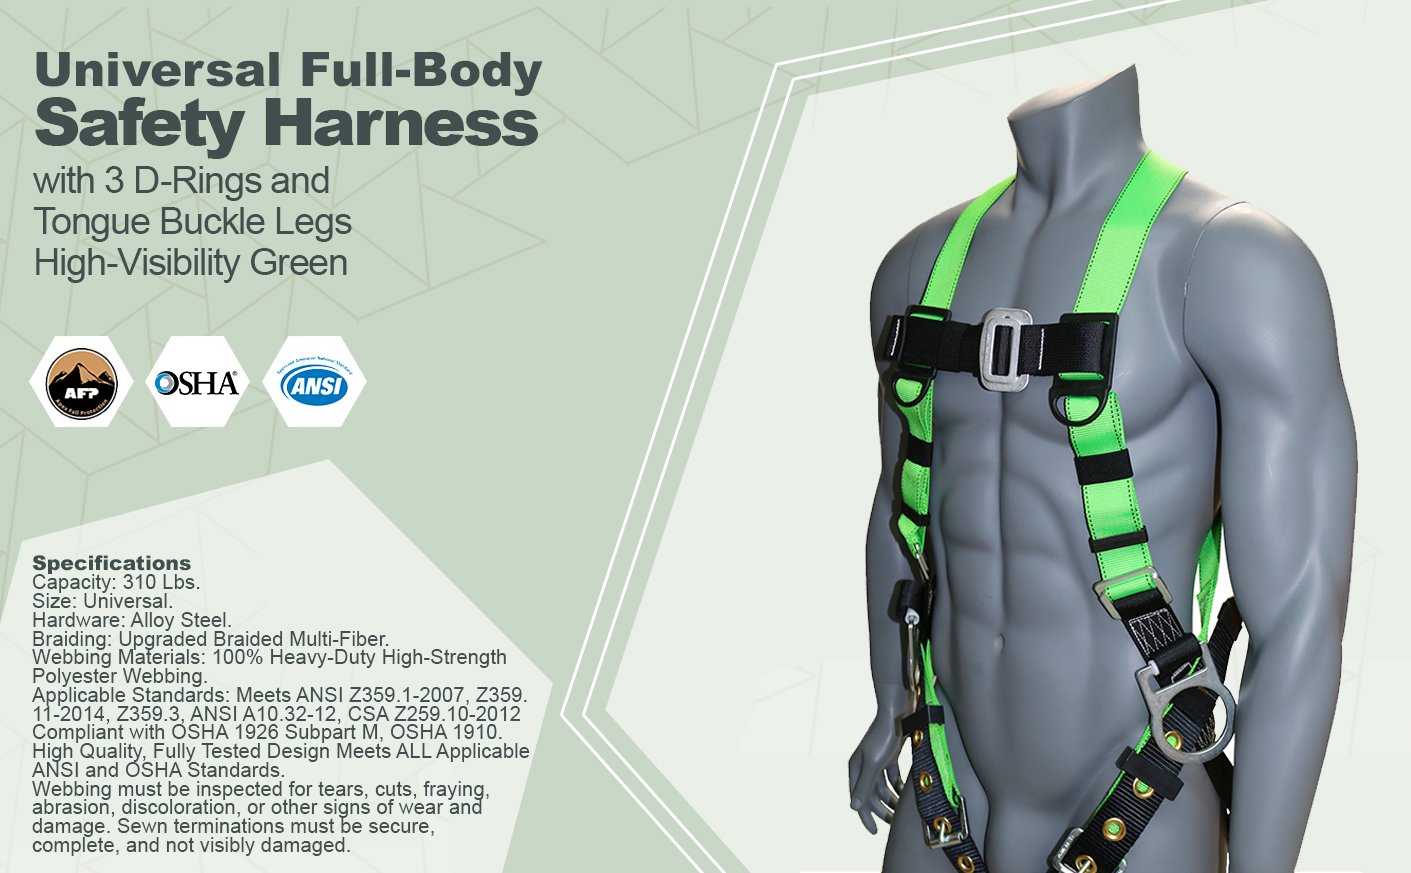 AFP Universal Full-Body Safety Harness with 3 D-Rings and Tongue Buckle Legs High-Visibility Green (OSHA/ANSI Compliant) Quick One Safety